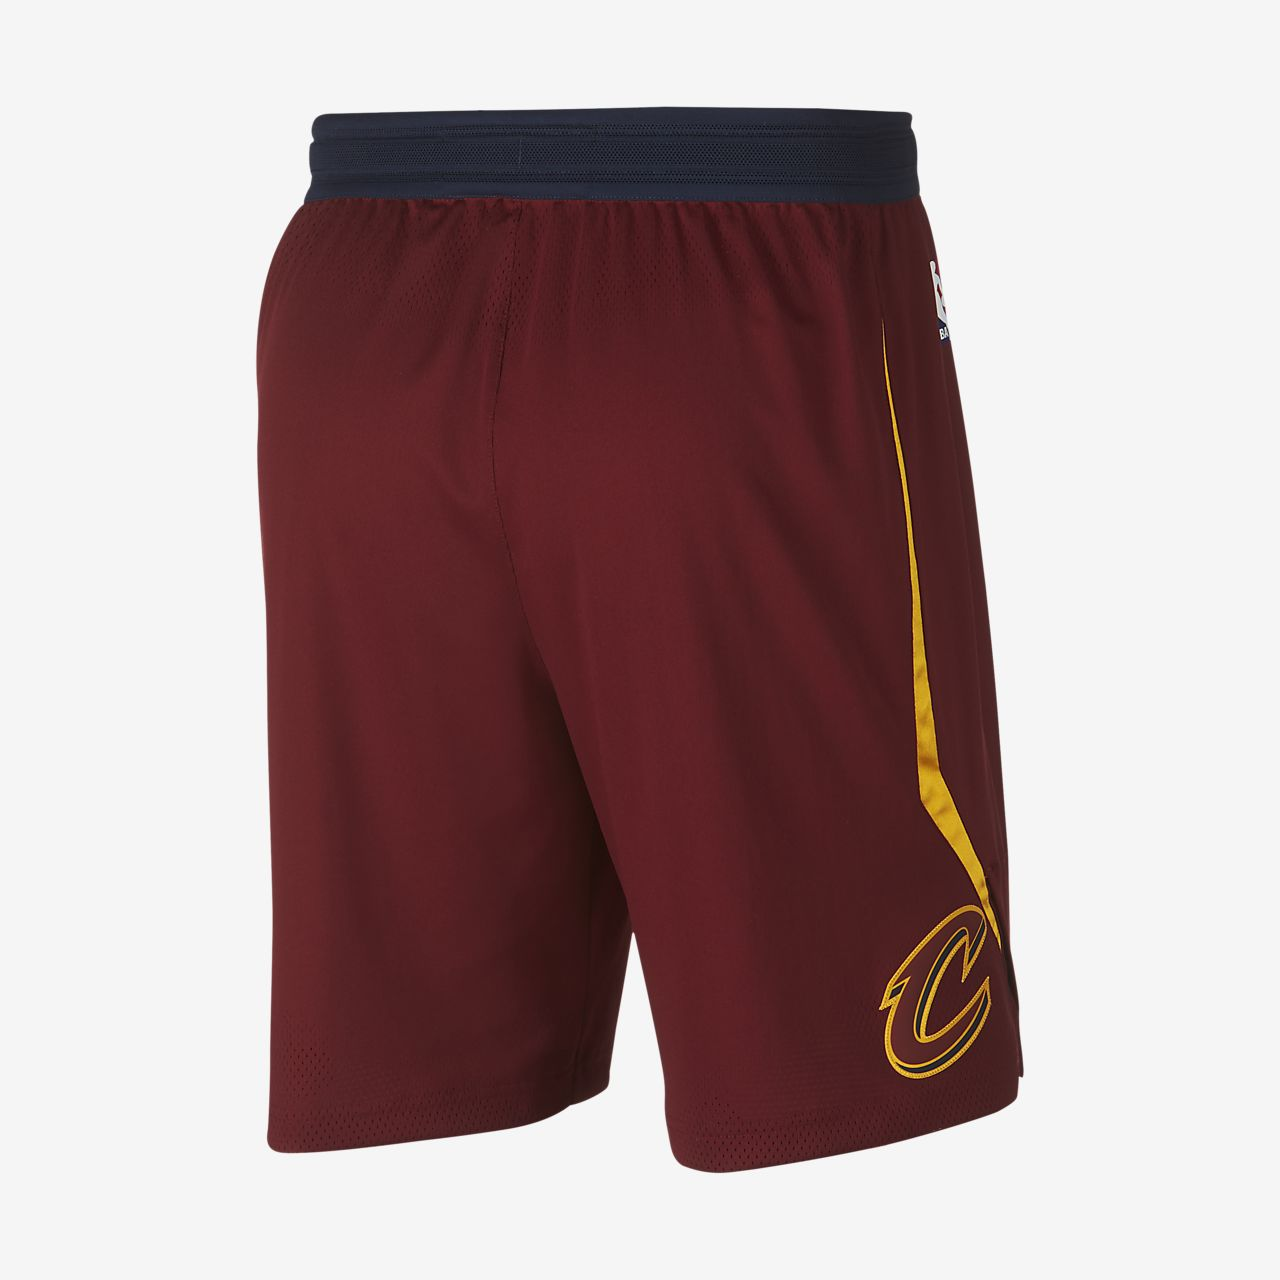 1505da822079 Cleveland Cavaliers Nike Icon Edition Authentic Men s NBA Shorts ...